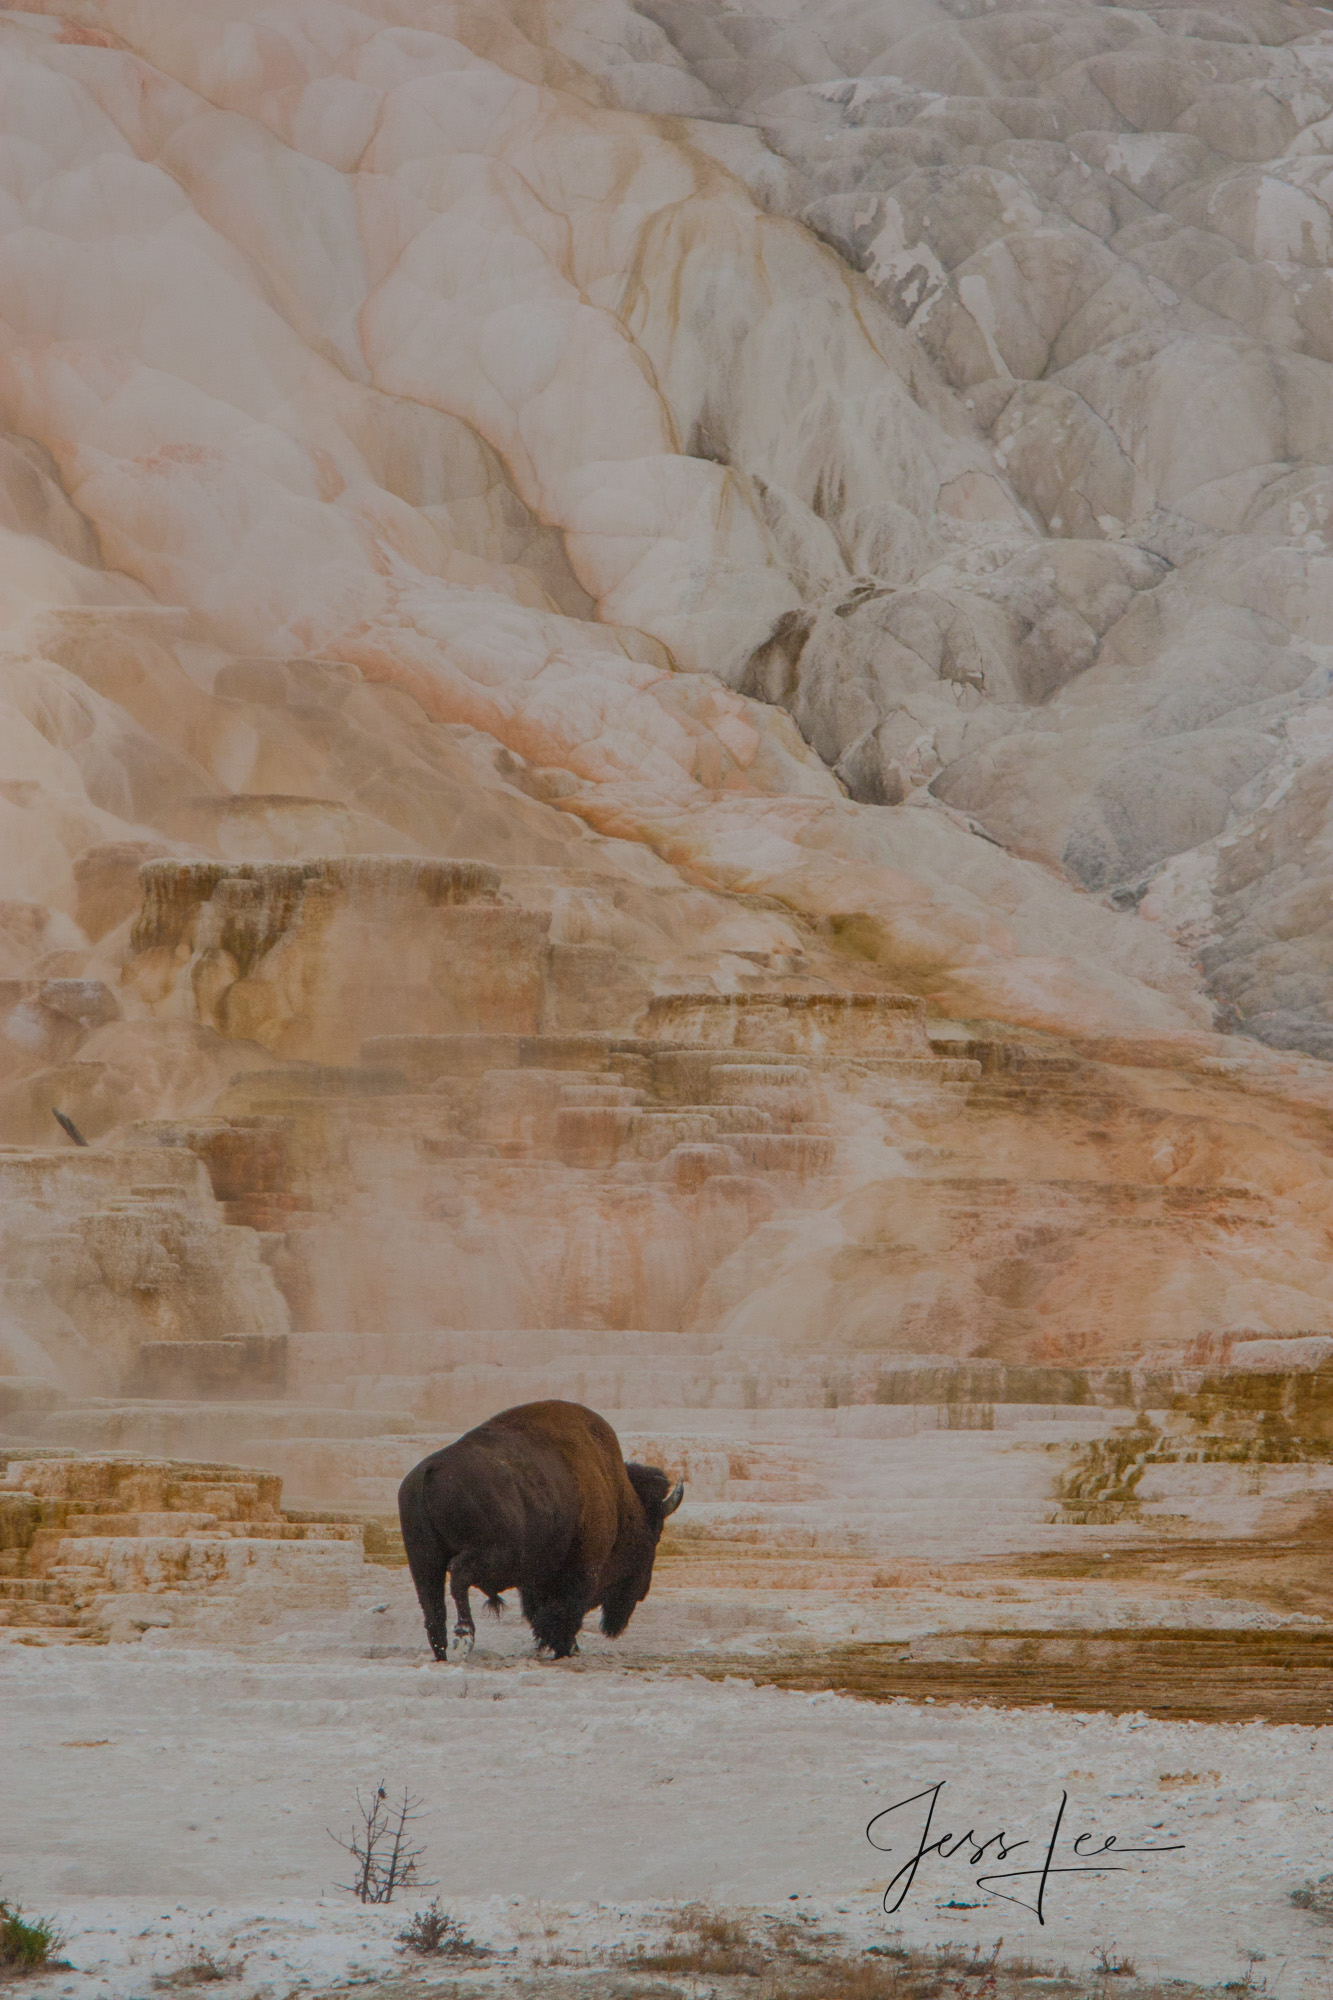 Bison at Mammoth Hot Springs, photo